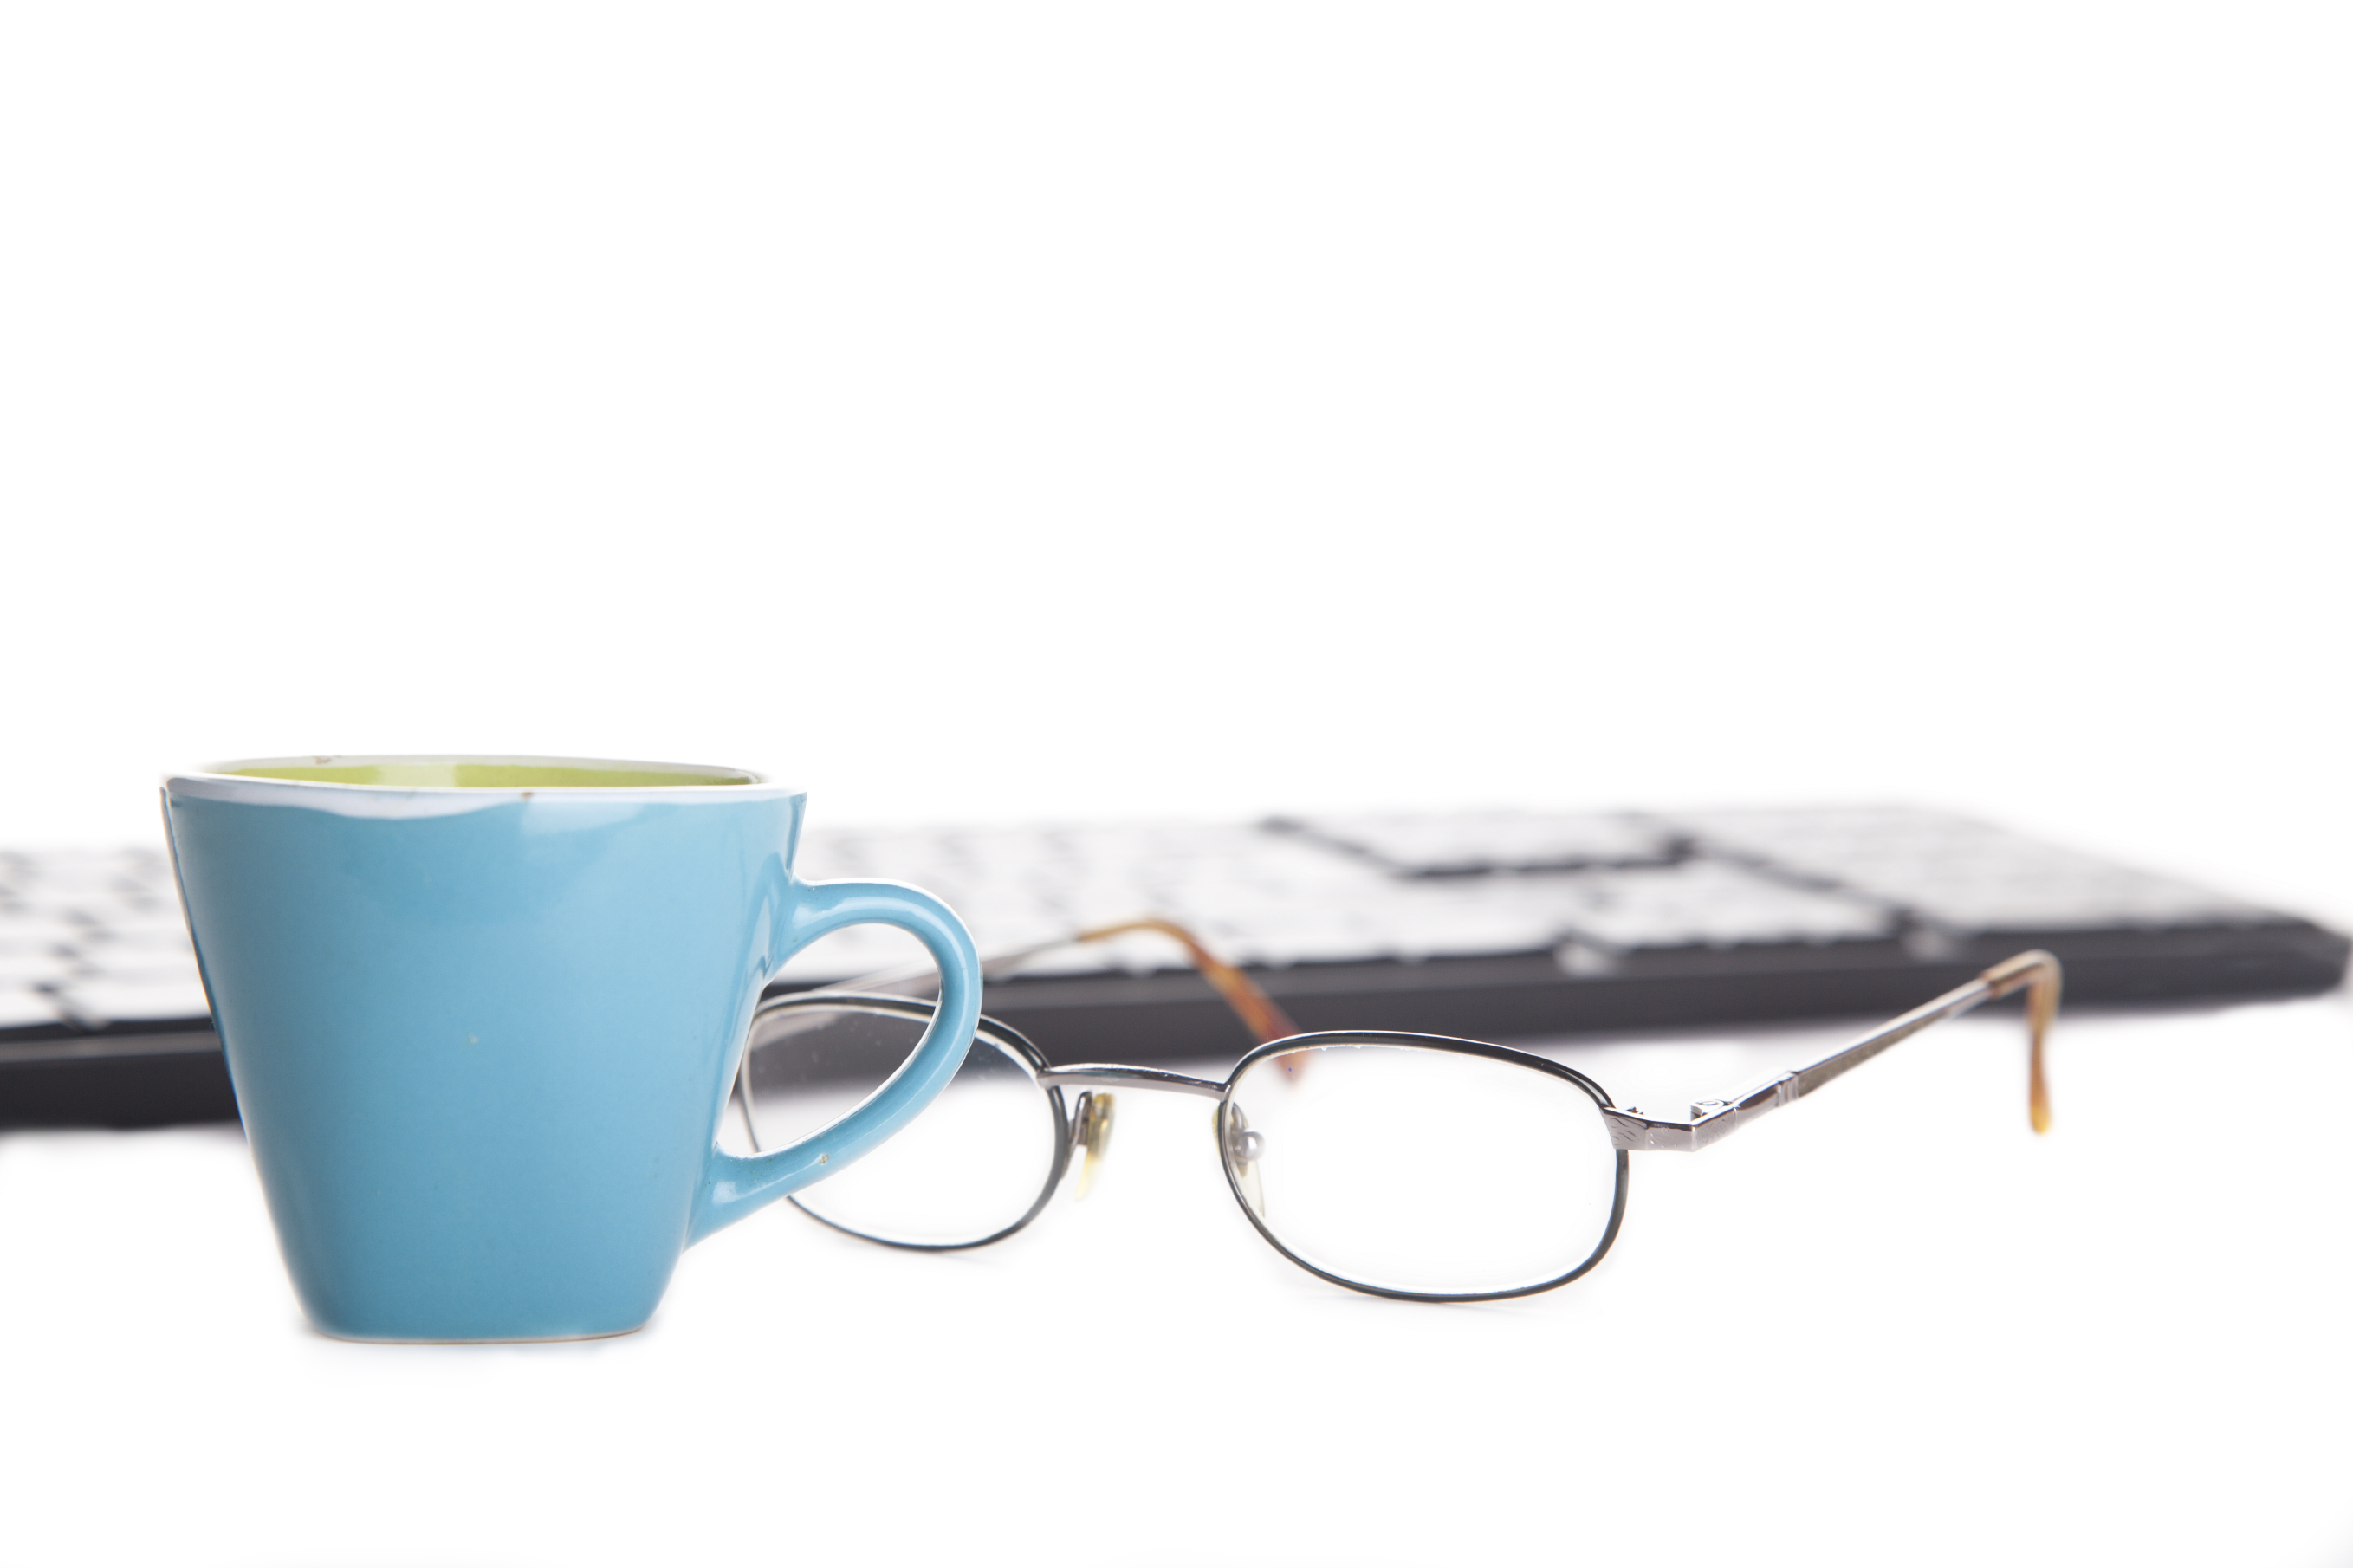 blue-cup-and-eyeglasses-isolated-000060055942_Large